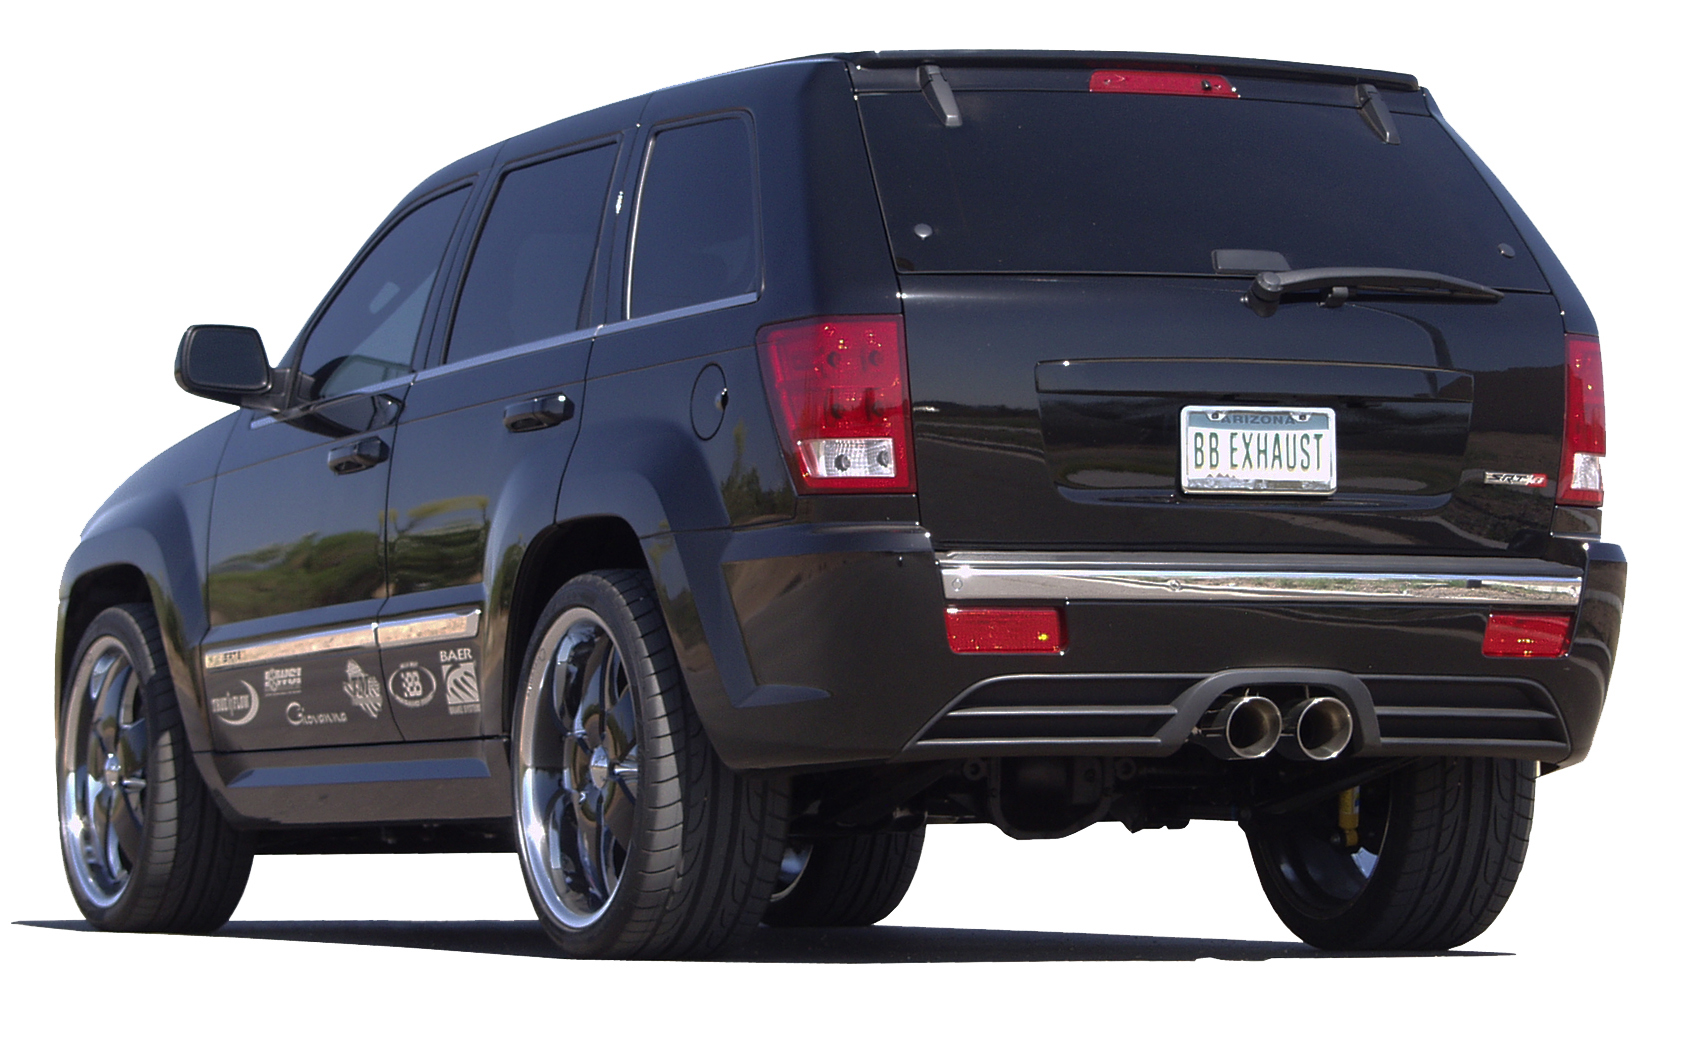 Jeep Grand Cherokee Srt8 Cat Back Exhaust System Round Tips Ftru 0310 Billy Boat Exhaust